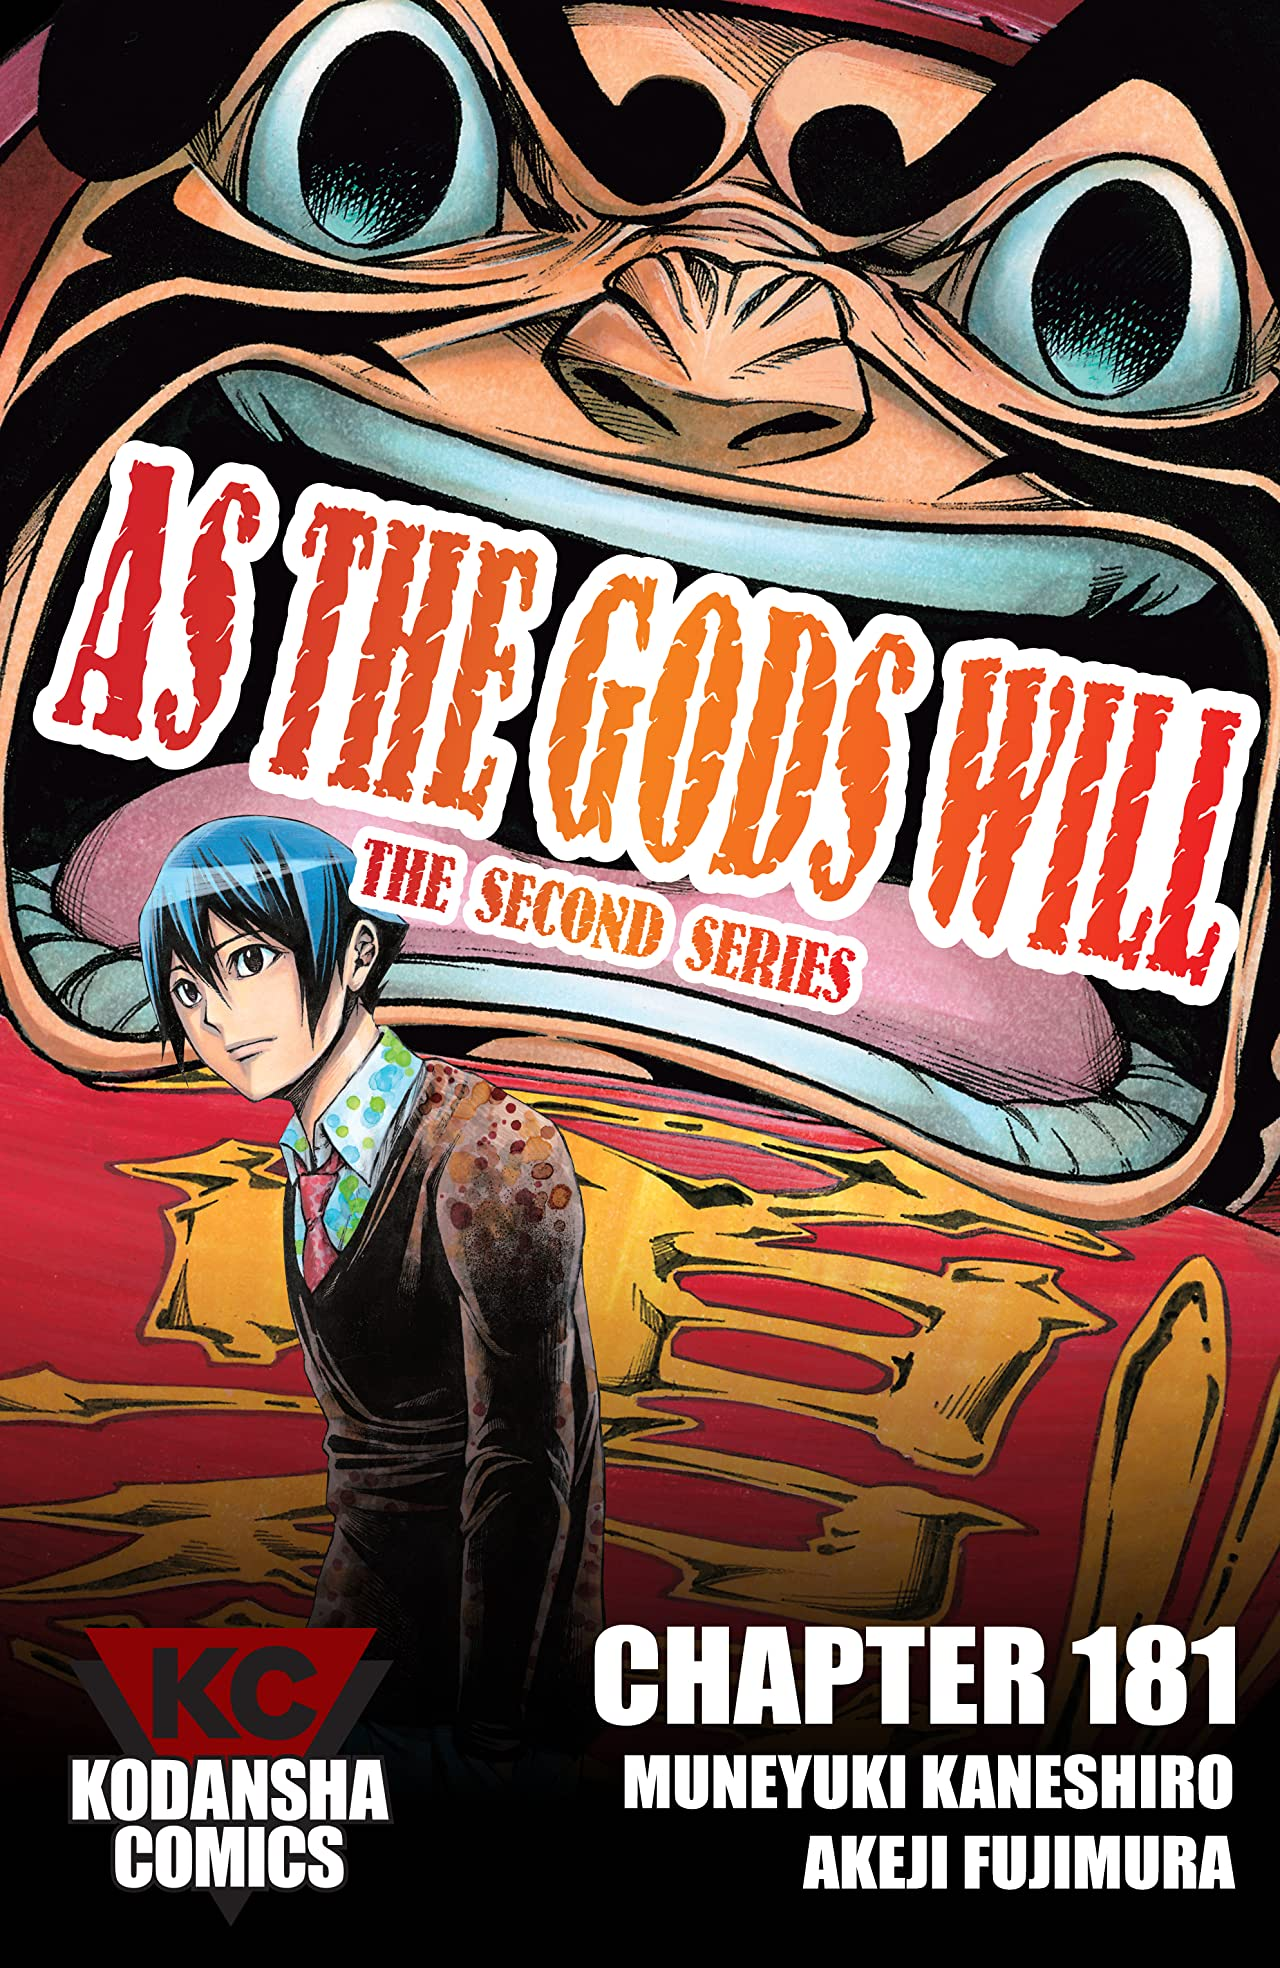 As The Gods Will: The Second Series #181